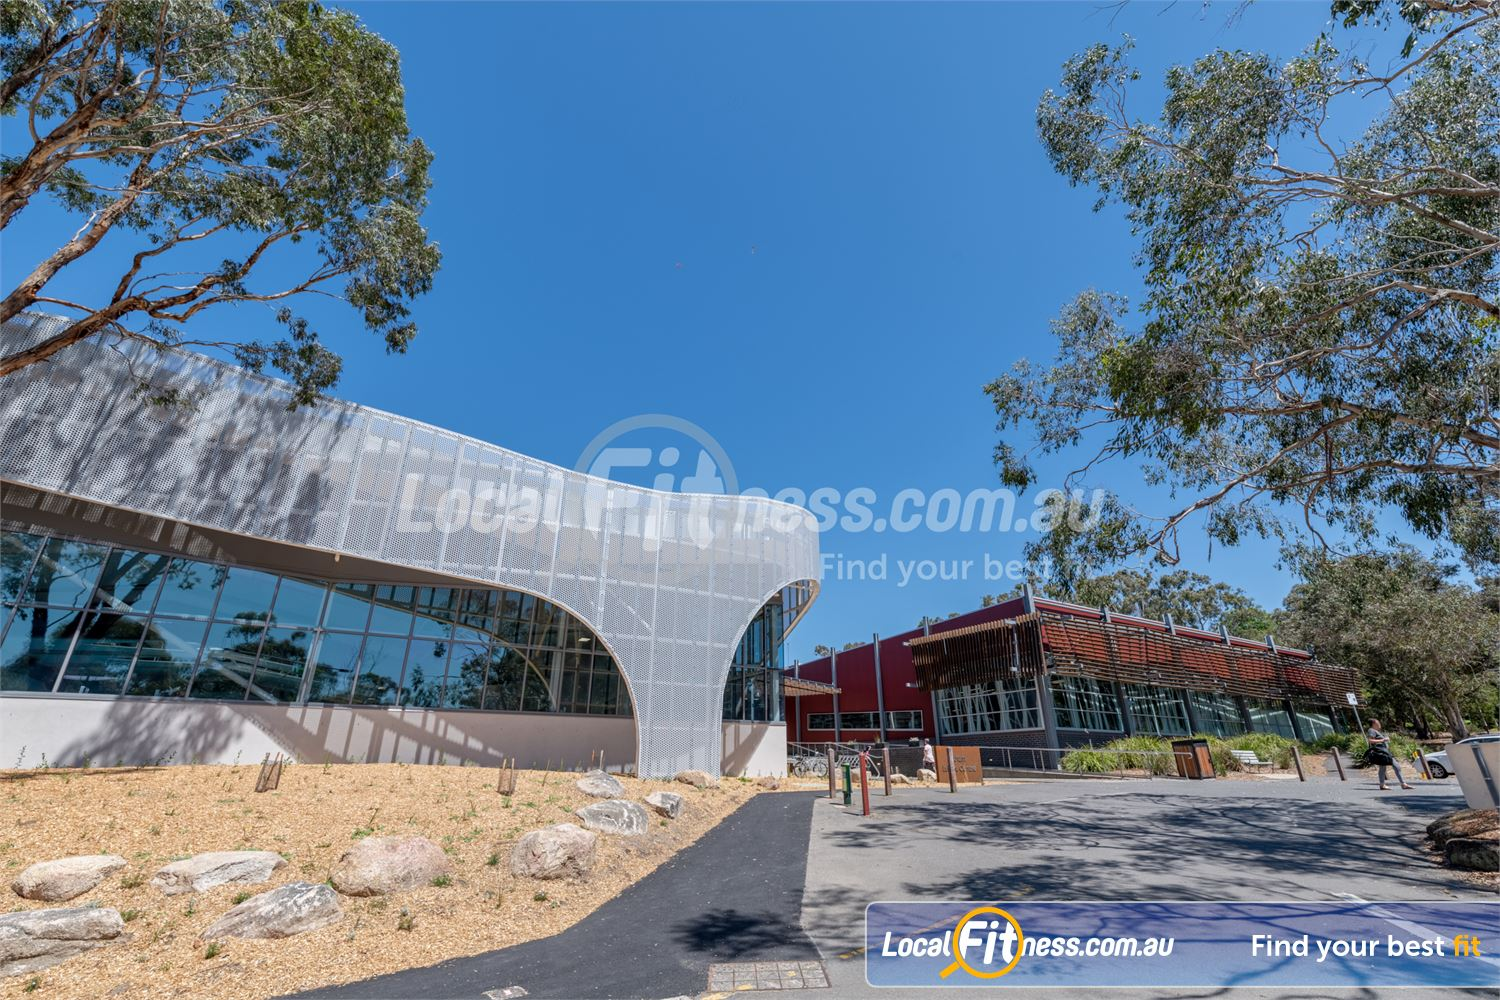 Eltham Leisure Centre Near Templestowe The newly redeveloped Eltham Leisure Centre with 24/7 Eltham gym access.